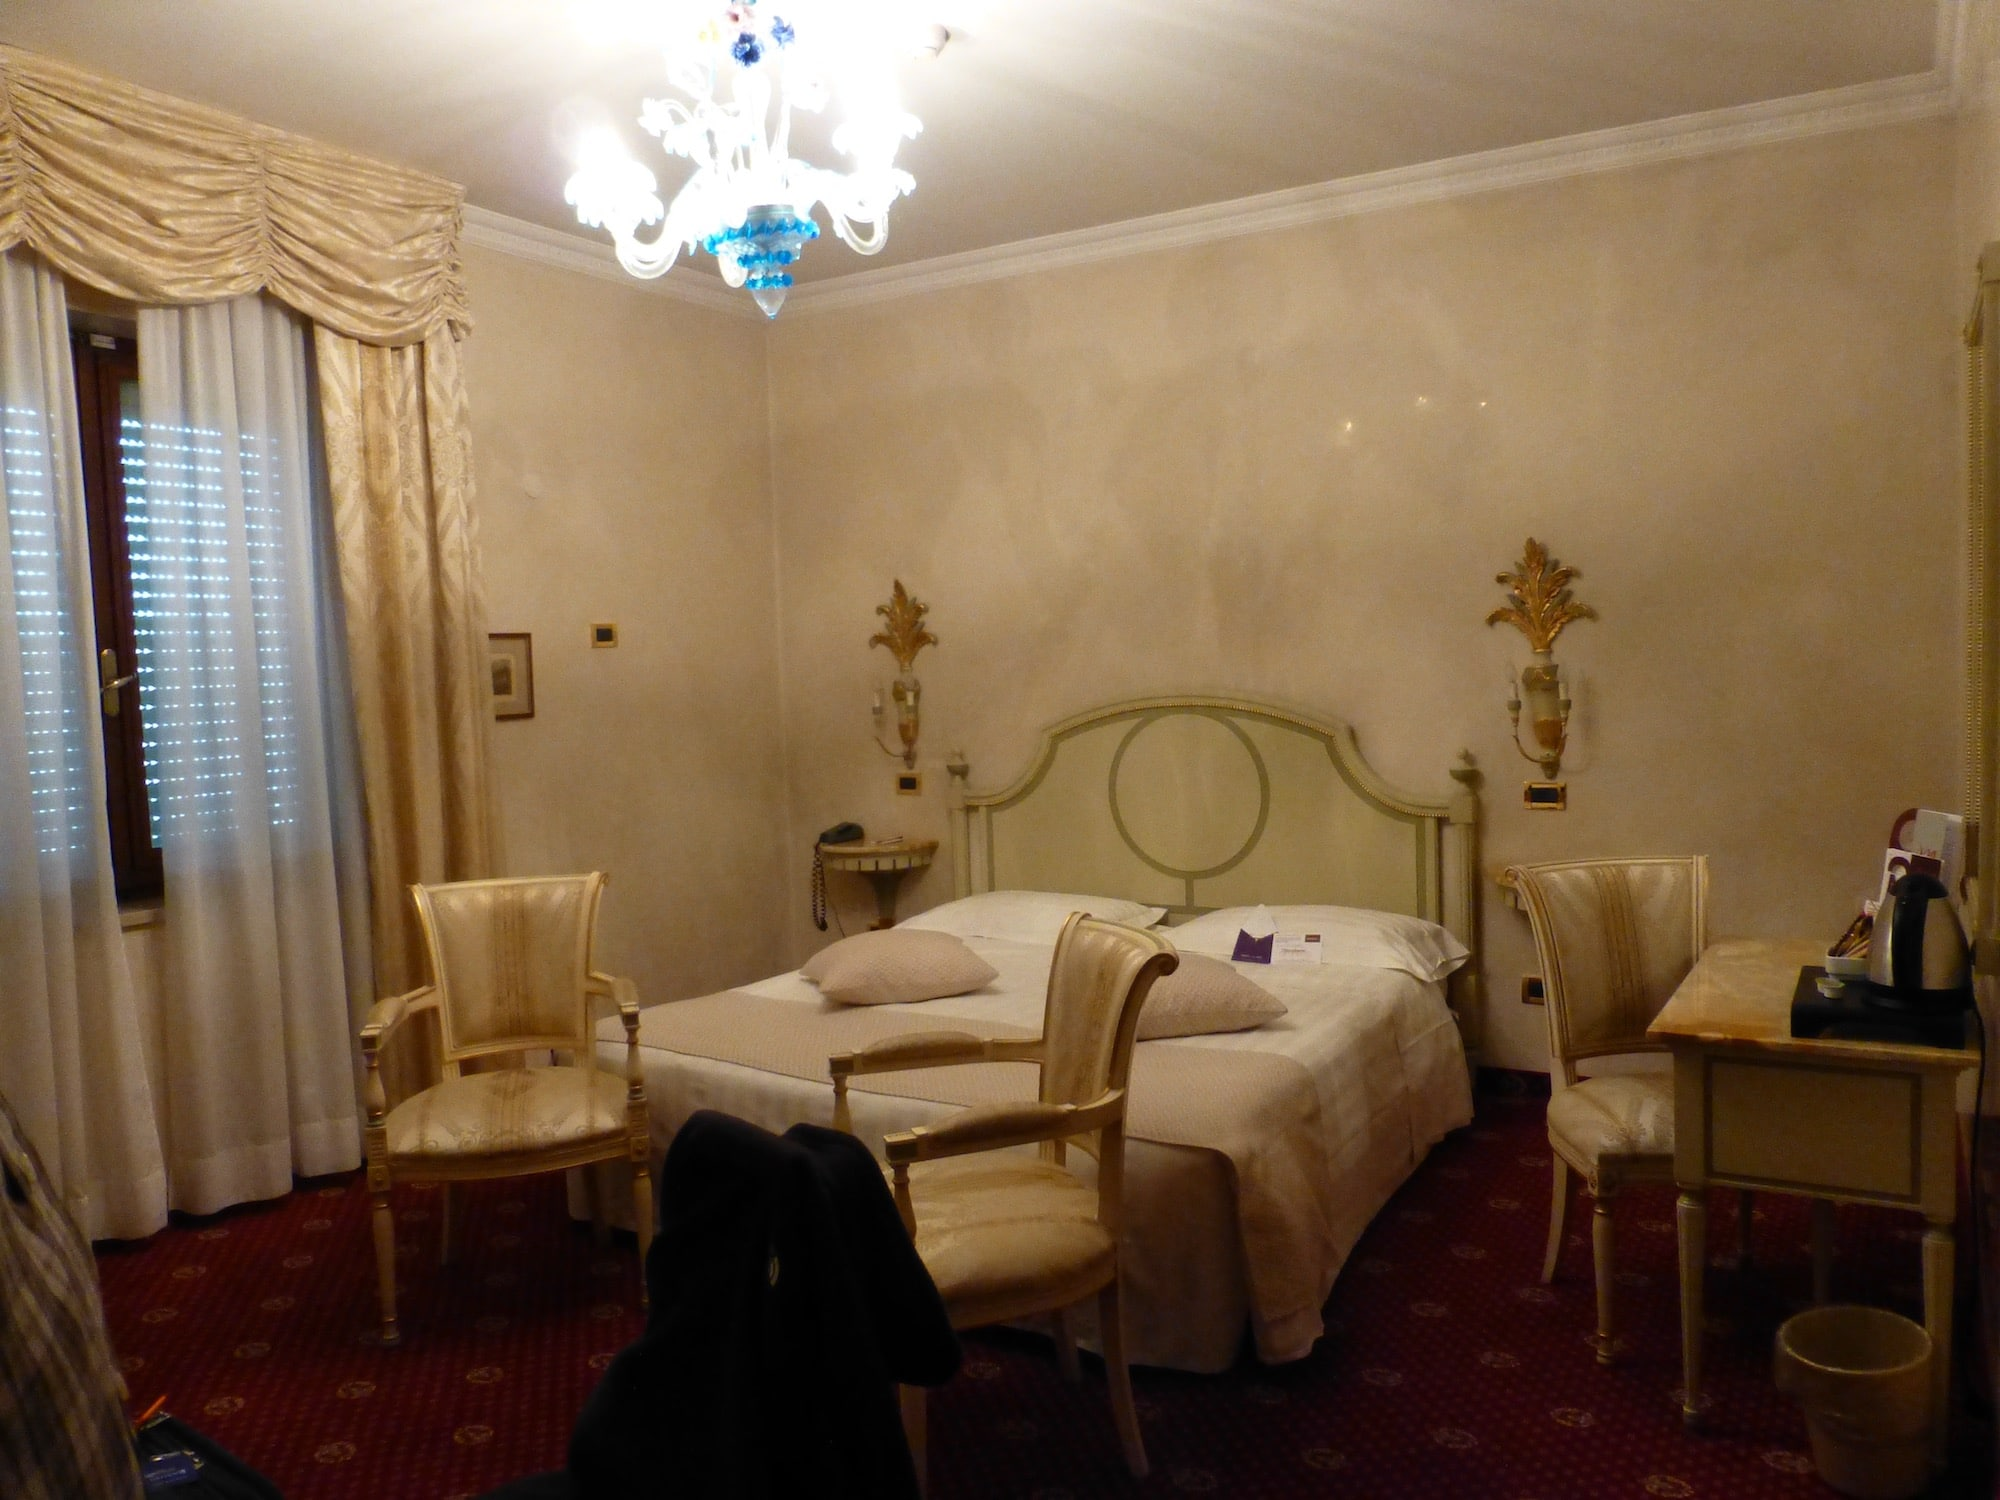 Cream and satin room at Parma Stendhal Hotel